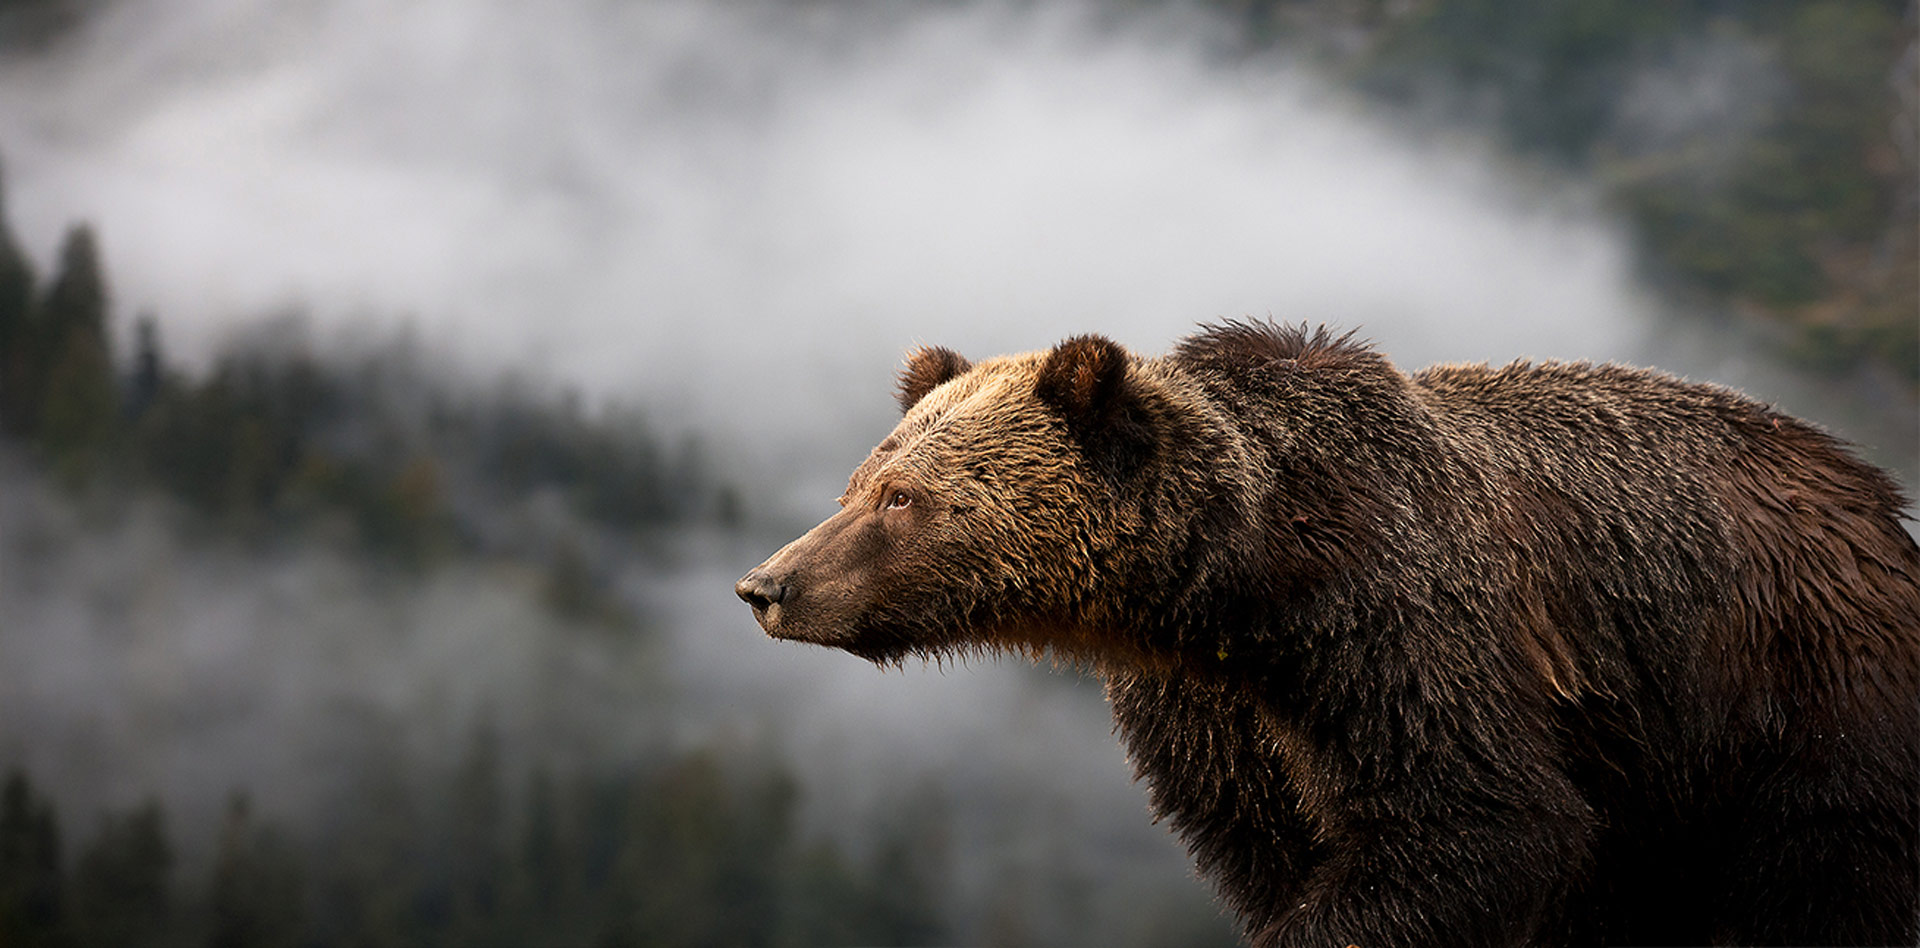 Eric Sambol - The Great Bear Rainforest - Conjour Wildlife Photography Feature - Grizzly Overlooking Mist - Feature